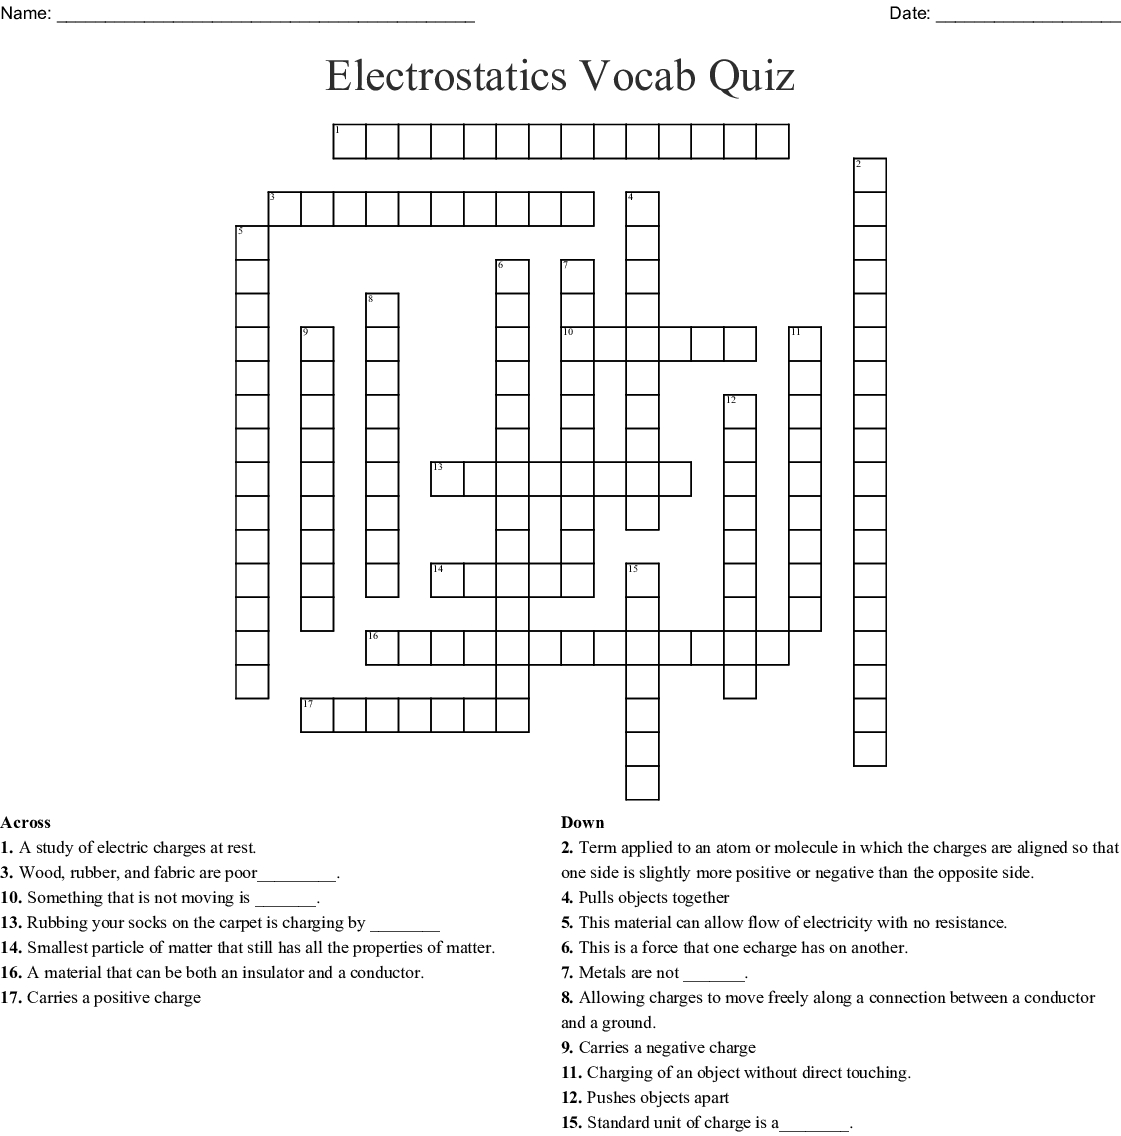 Electrostatics Vocab Quiz Crossword - Wordmint - Printable Vocabulary Quiz Crossword Puzzle